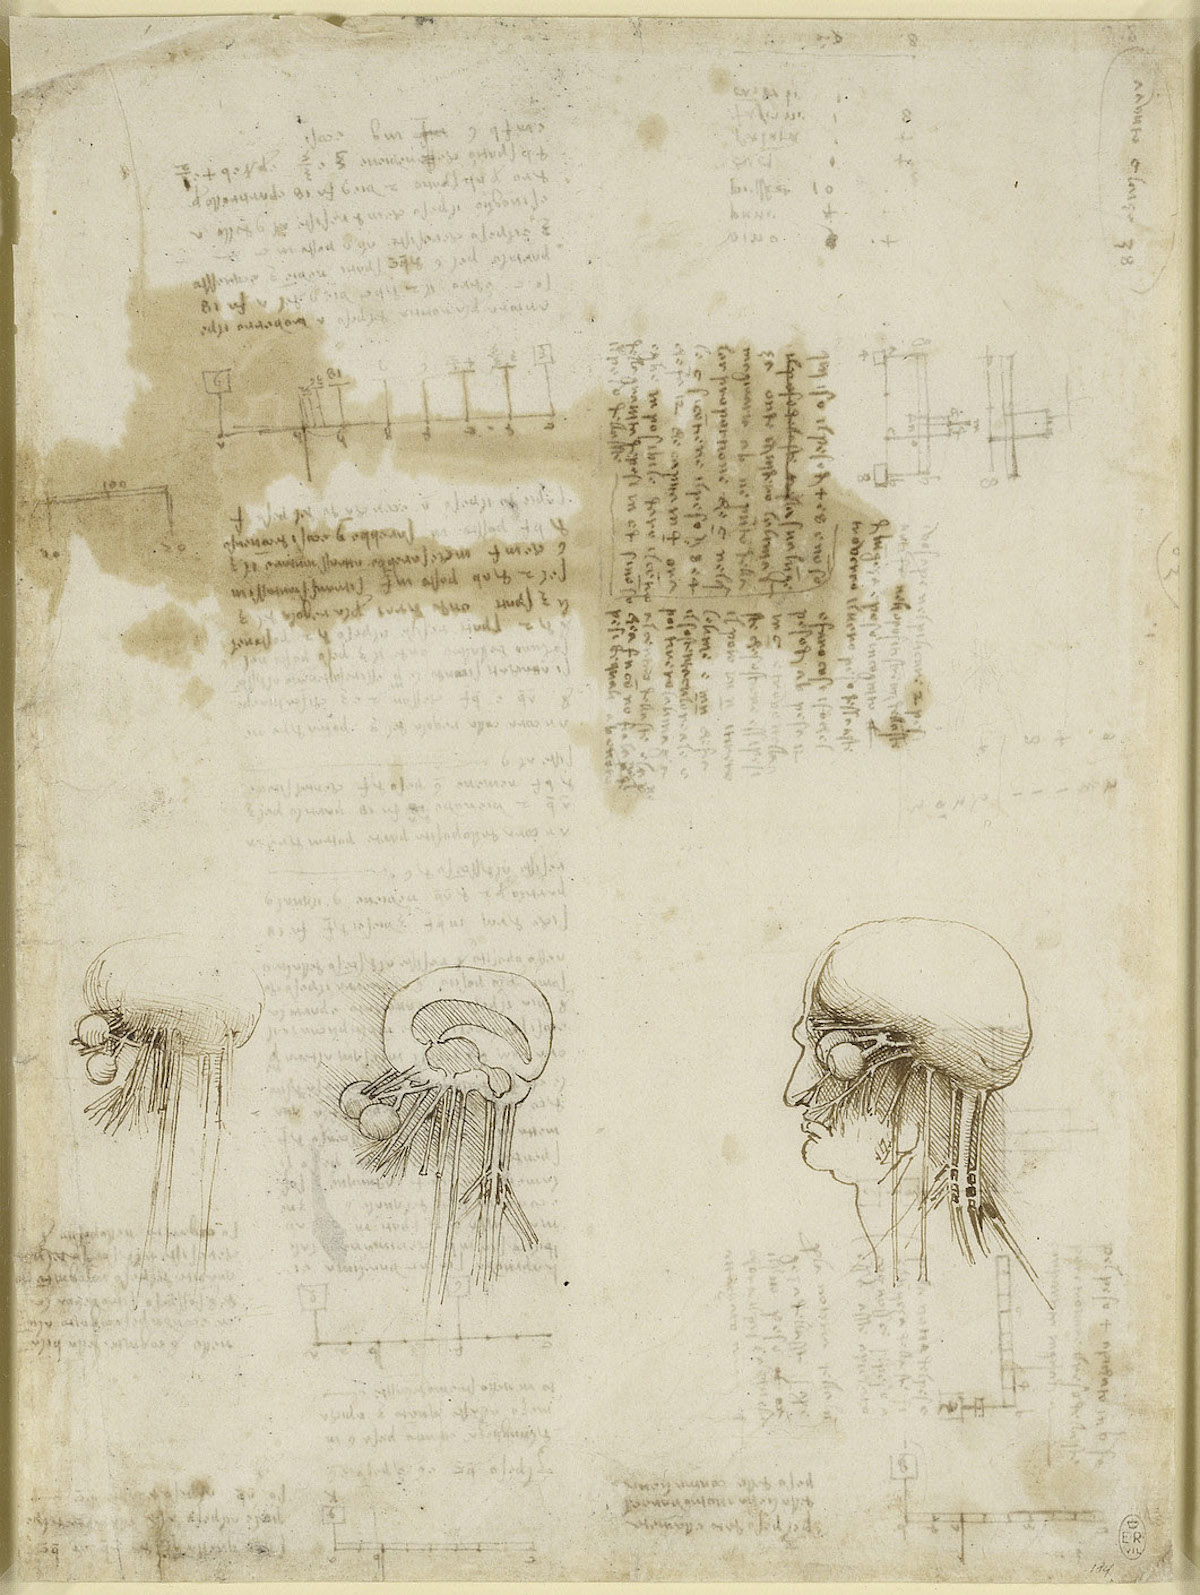 The nerve pathways to the brain. 1510